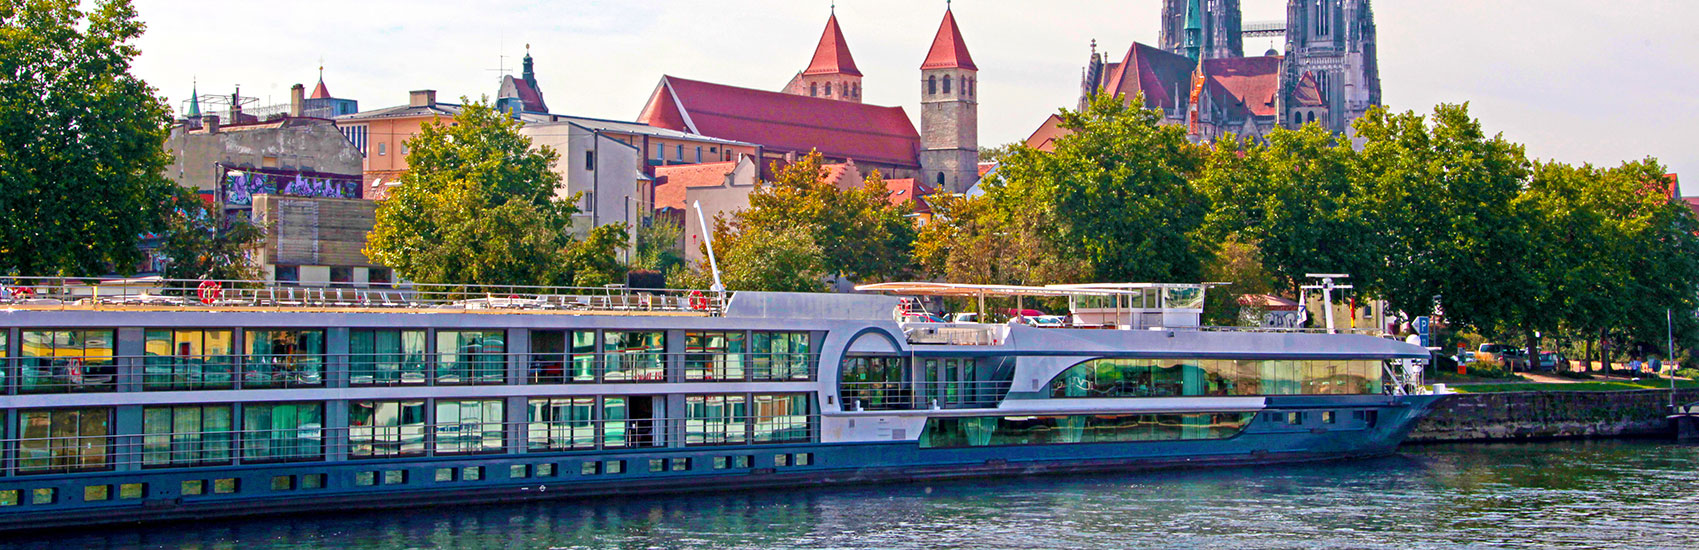 Airfare and Cruise Savings with Avalon Waterways Europe River Cruises 0